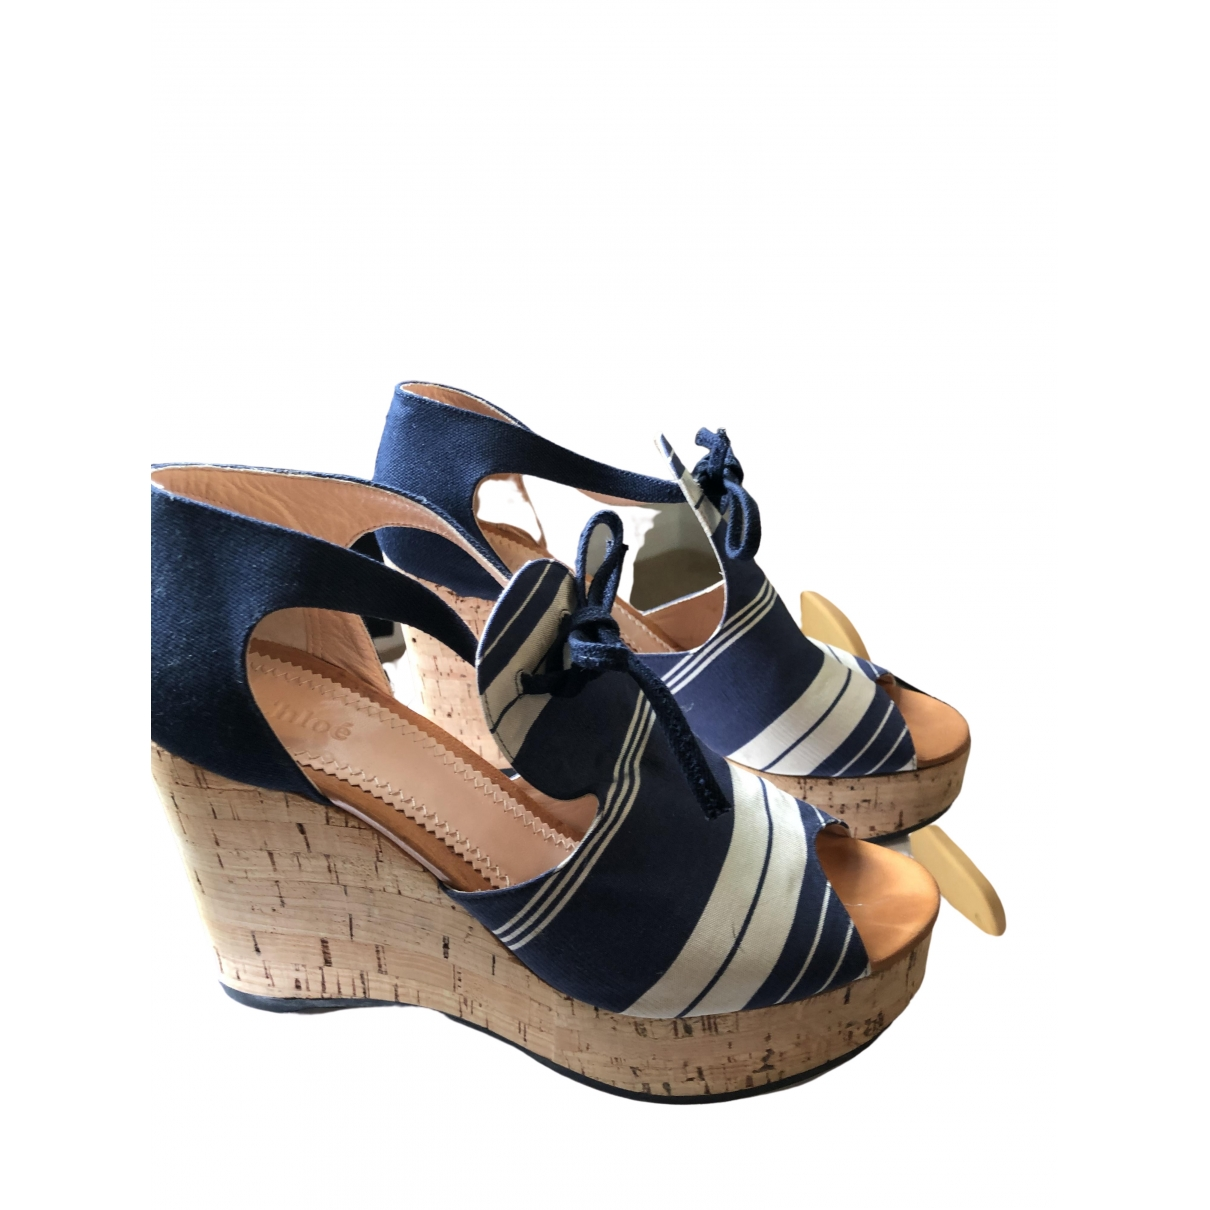 Chloé \N Blue Leather Sandals for Women 39 IT